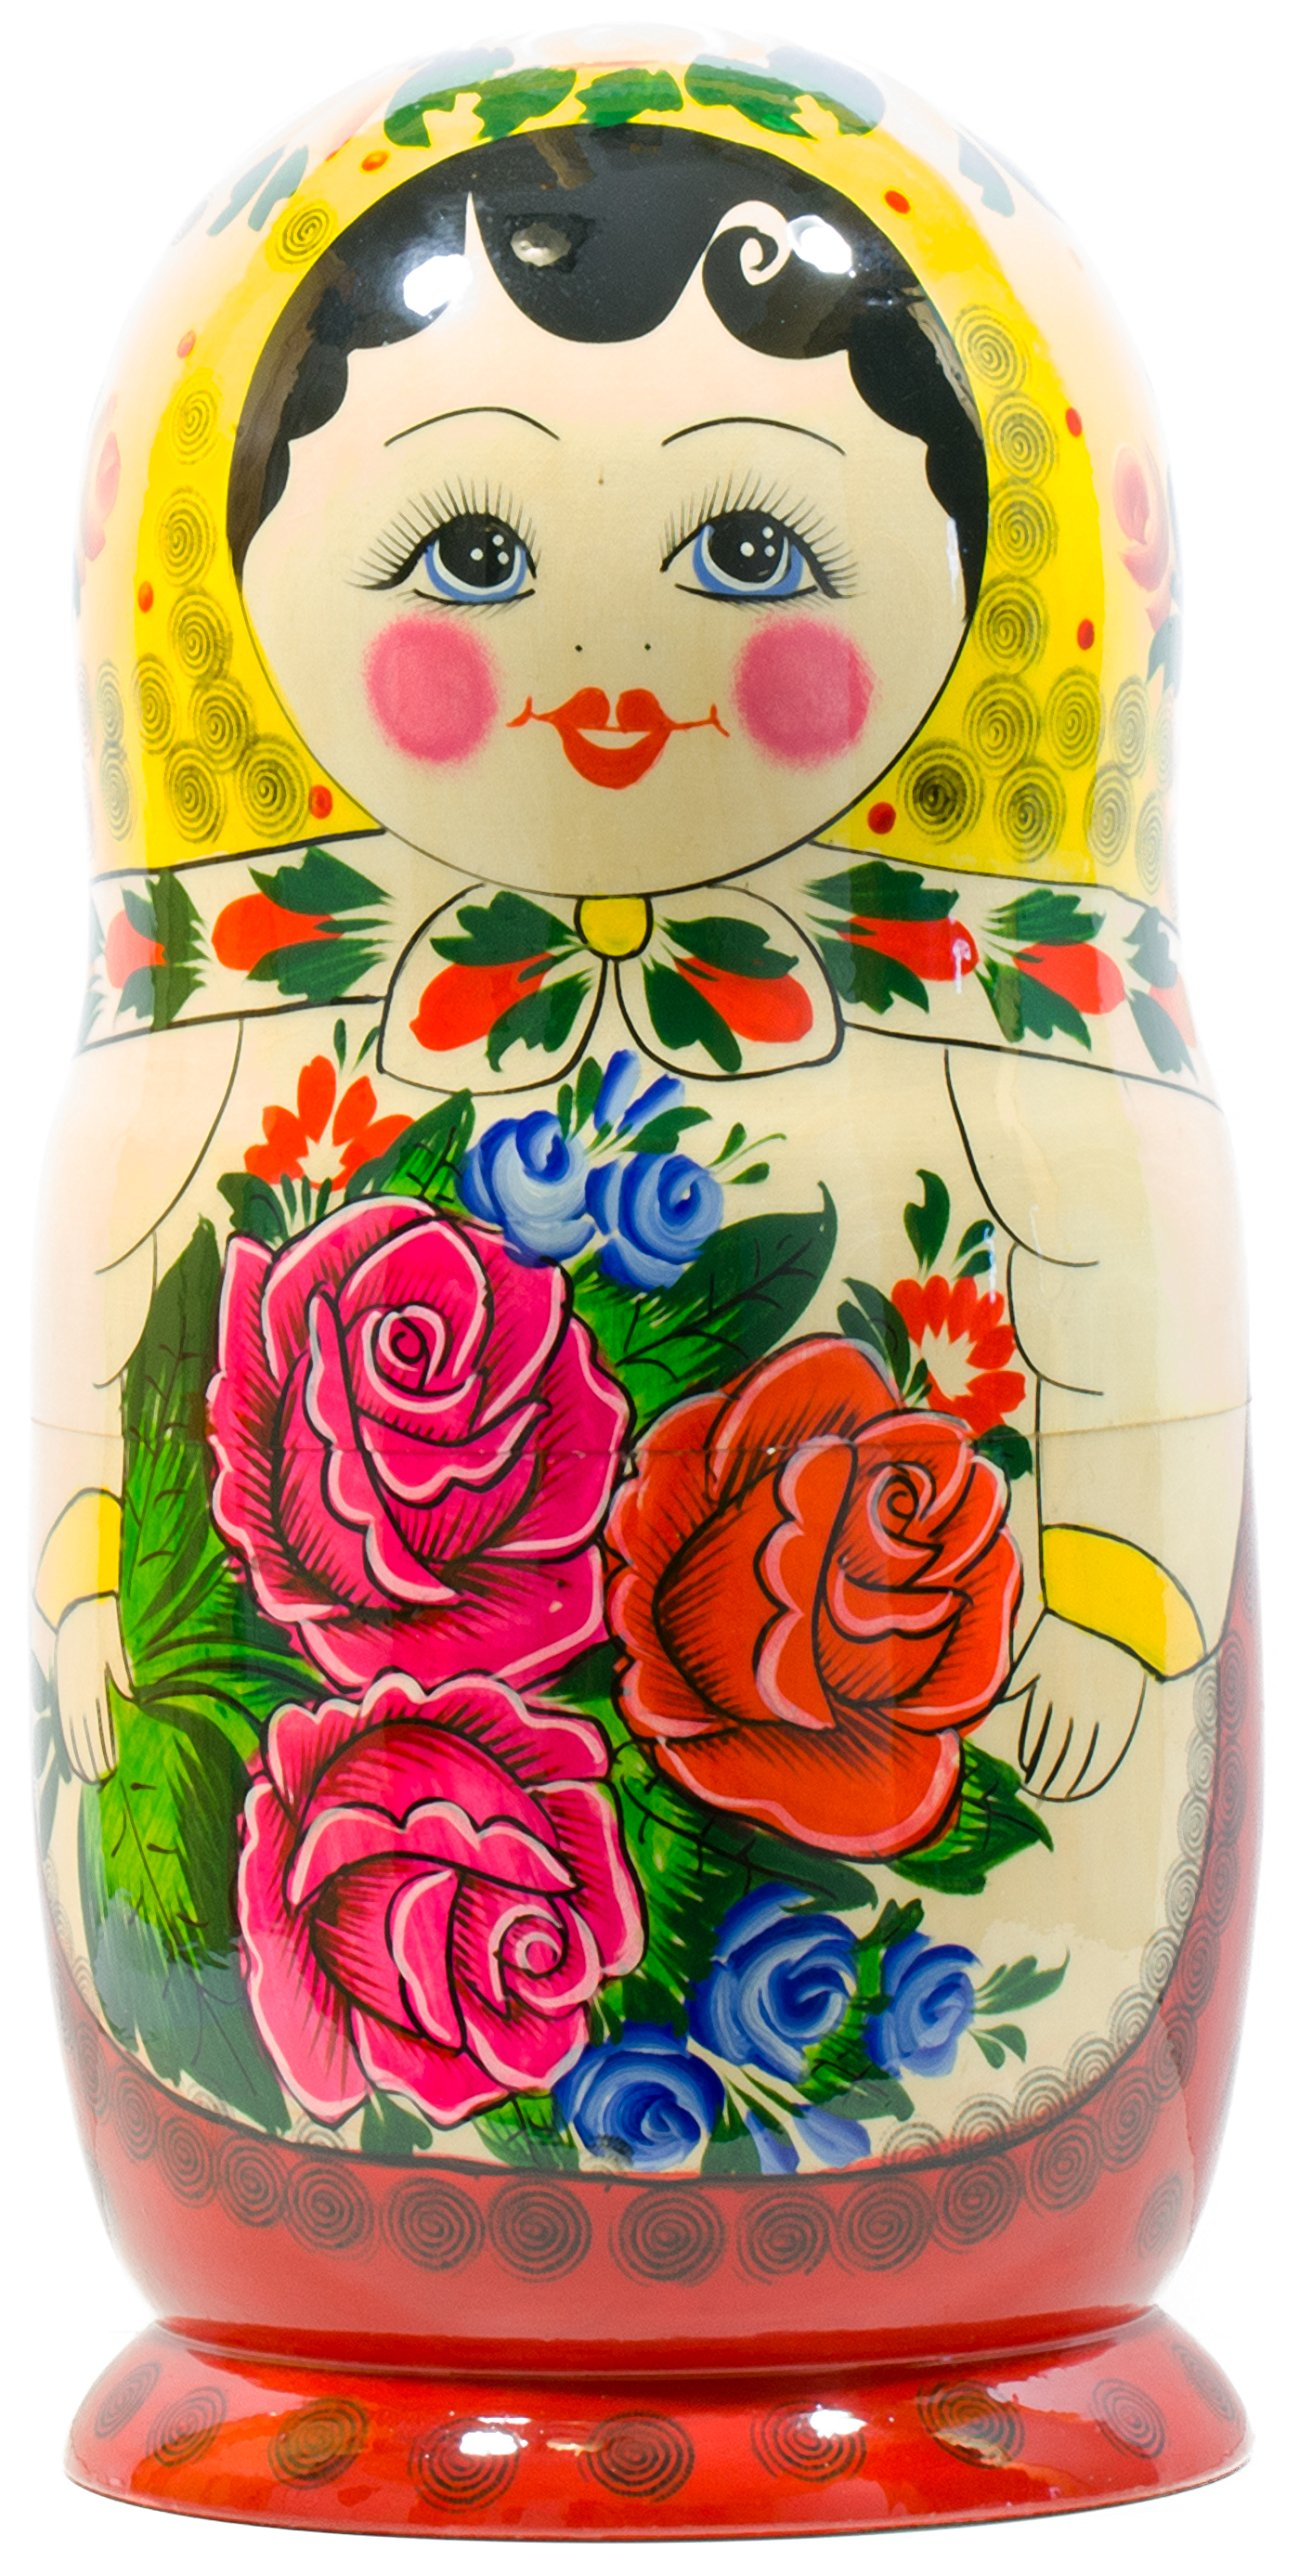 Russian Nesting Doll -Semenovo - Hand Painted in Russia - 6 Color|Size Variations - Wooden Decoration Gift Doll - Traditional Matryoshka Babushka (14``(20 Dolls in 1), Yellow - Red) by craftsfromrussia (Image #6)